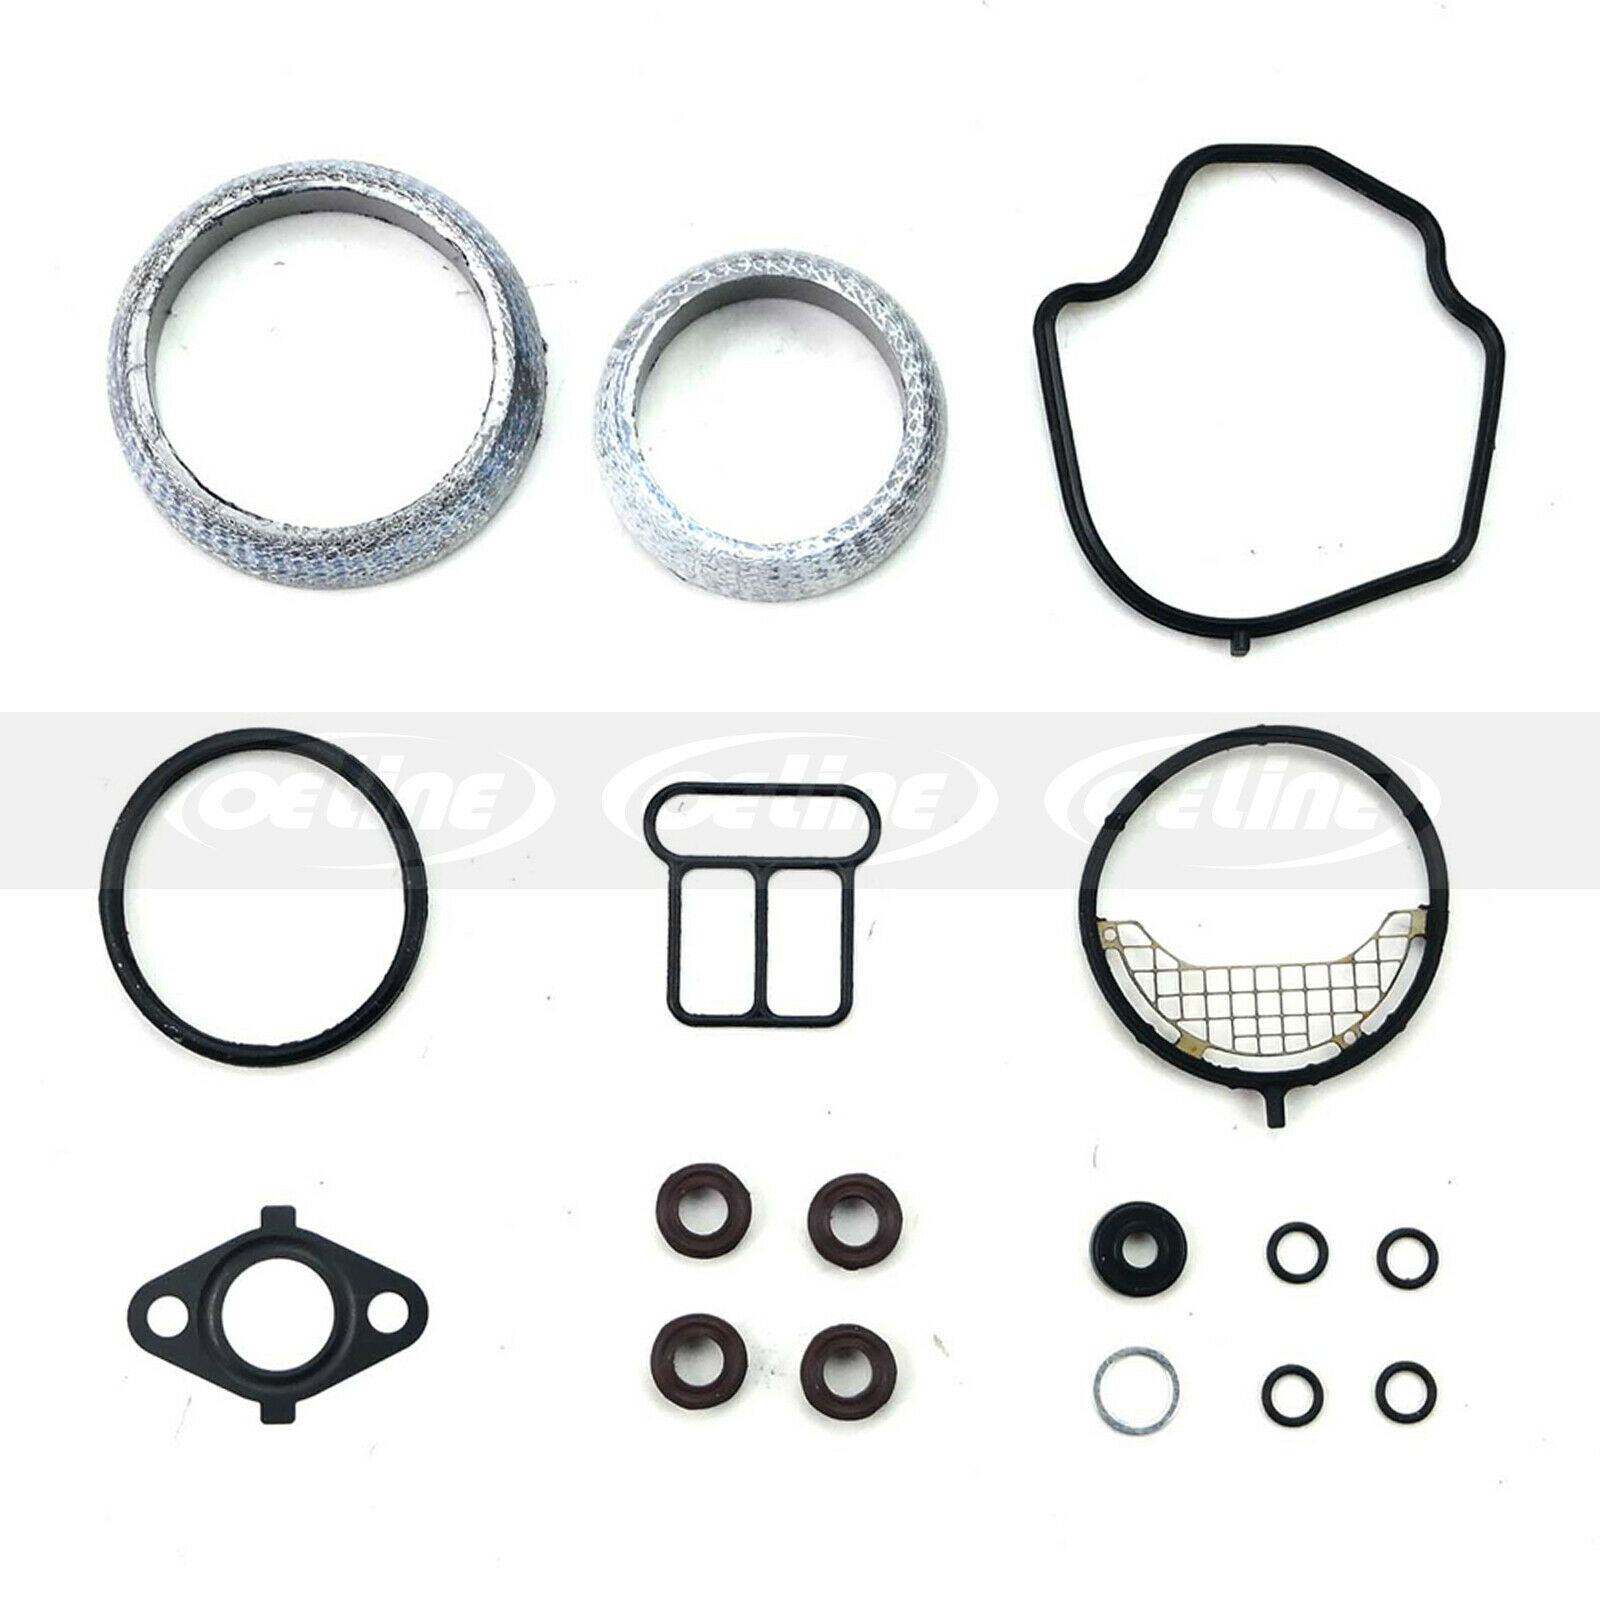 Head Gasket Set For 98-08 Toyota Corolla Matrix Celica MR2